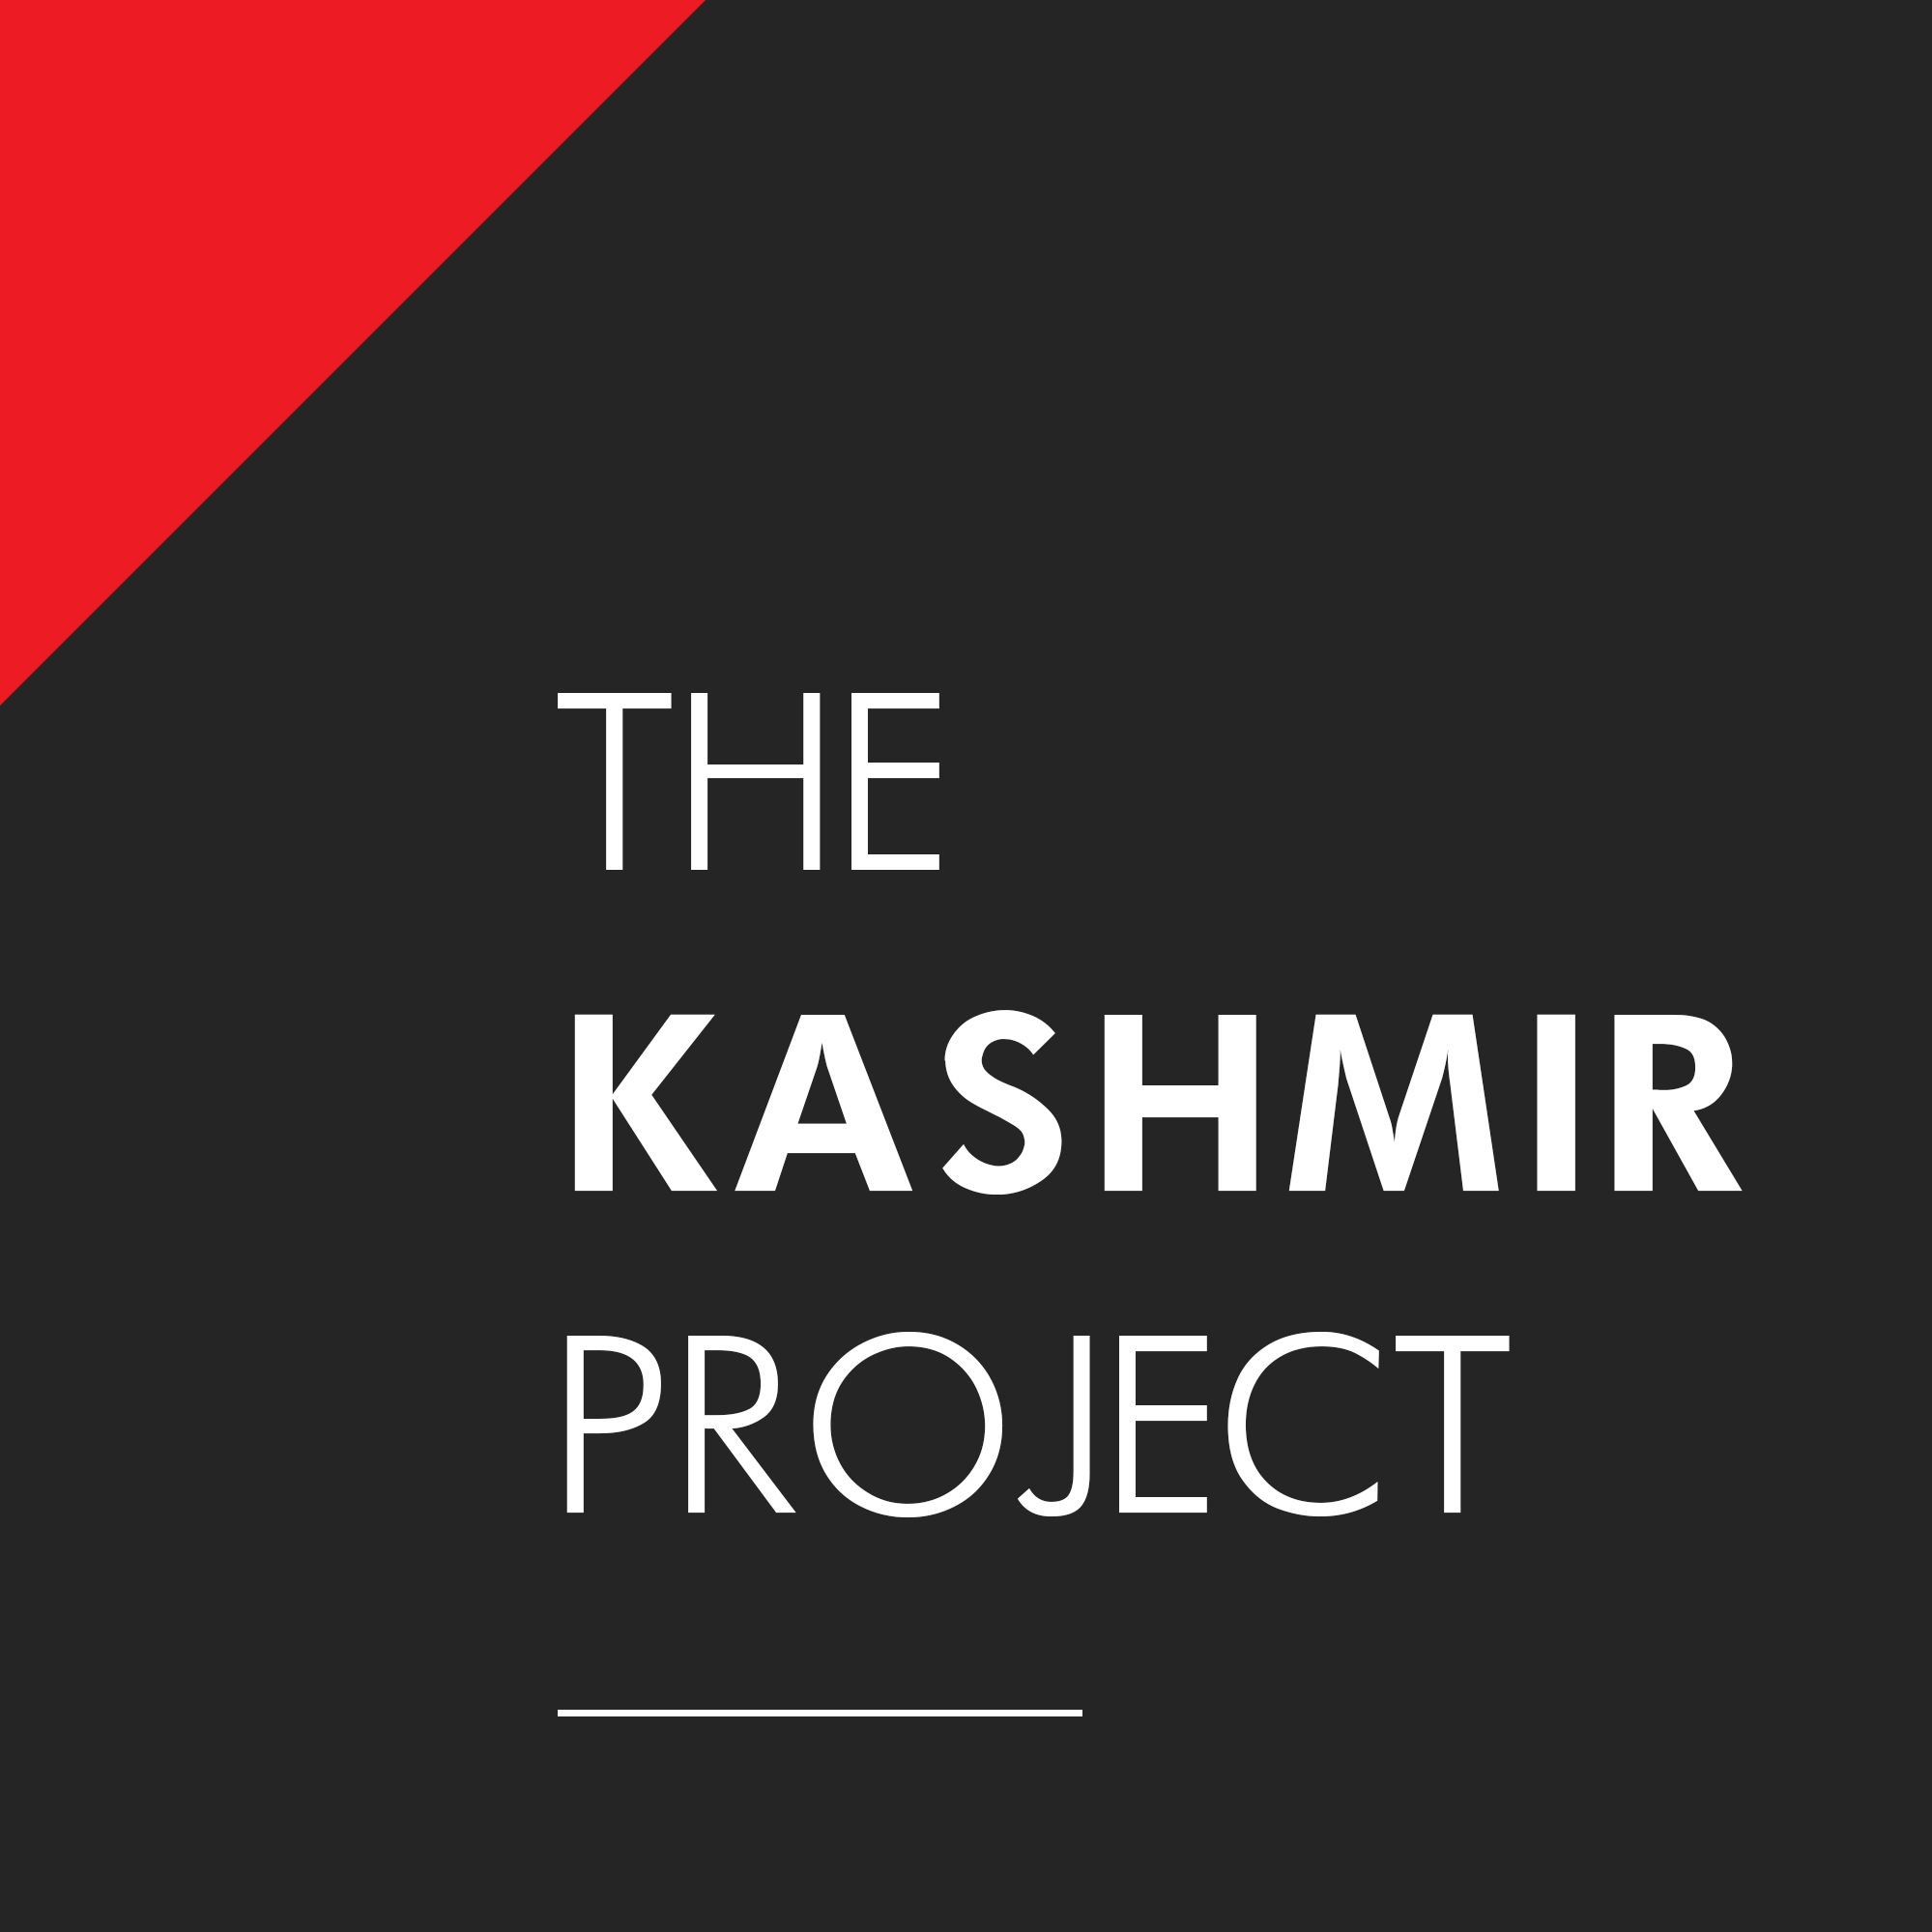 The Kashmir Project